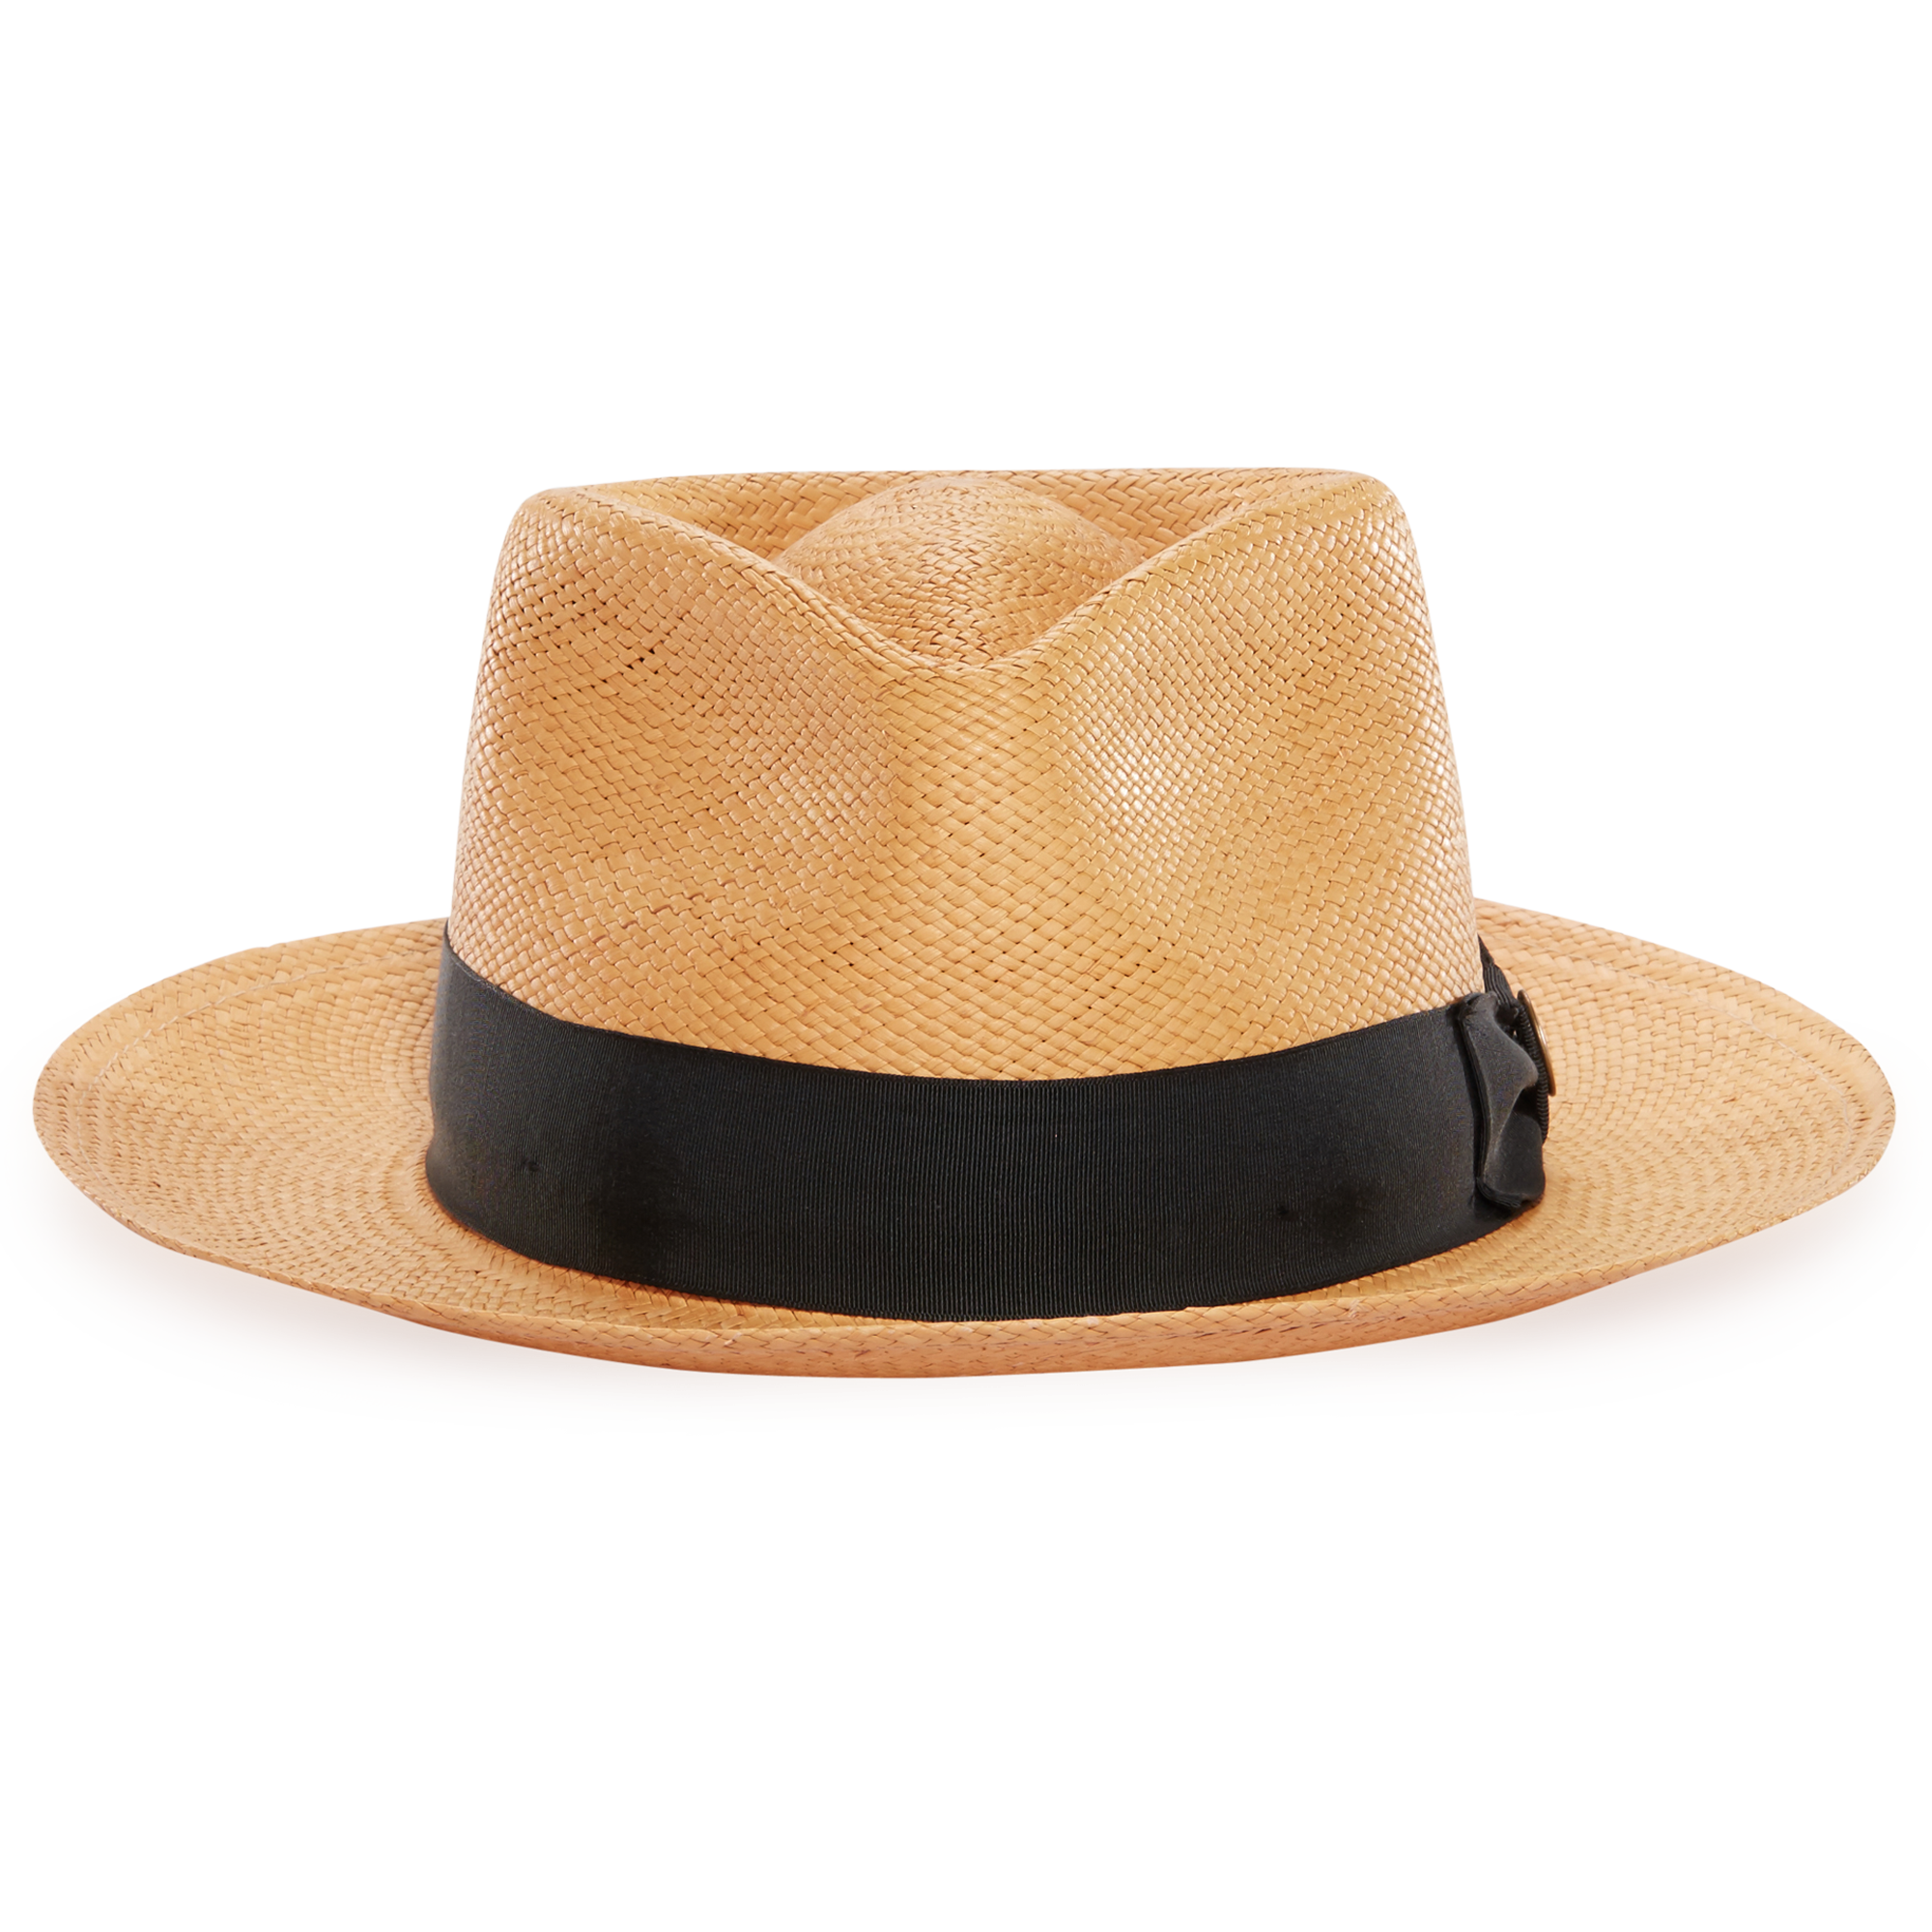 Images of Hat | 2000x2000